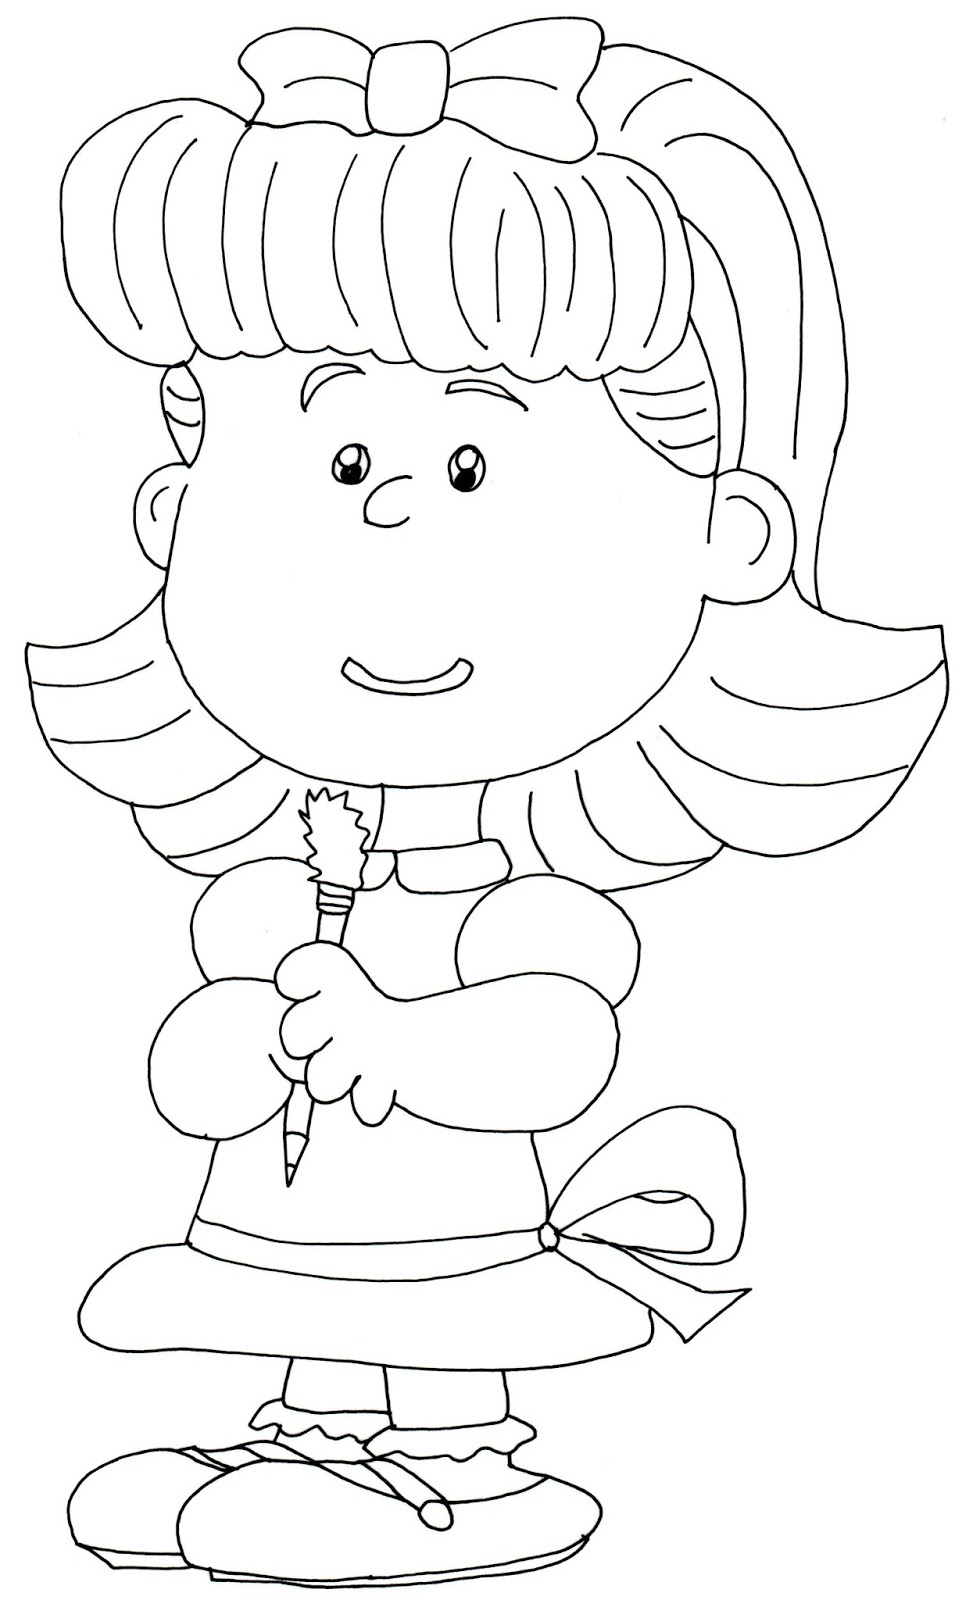 linus great pumpkin coloring pages - photo#18